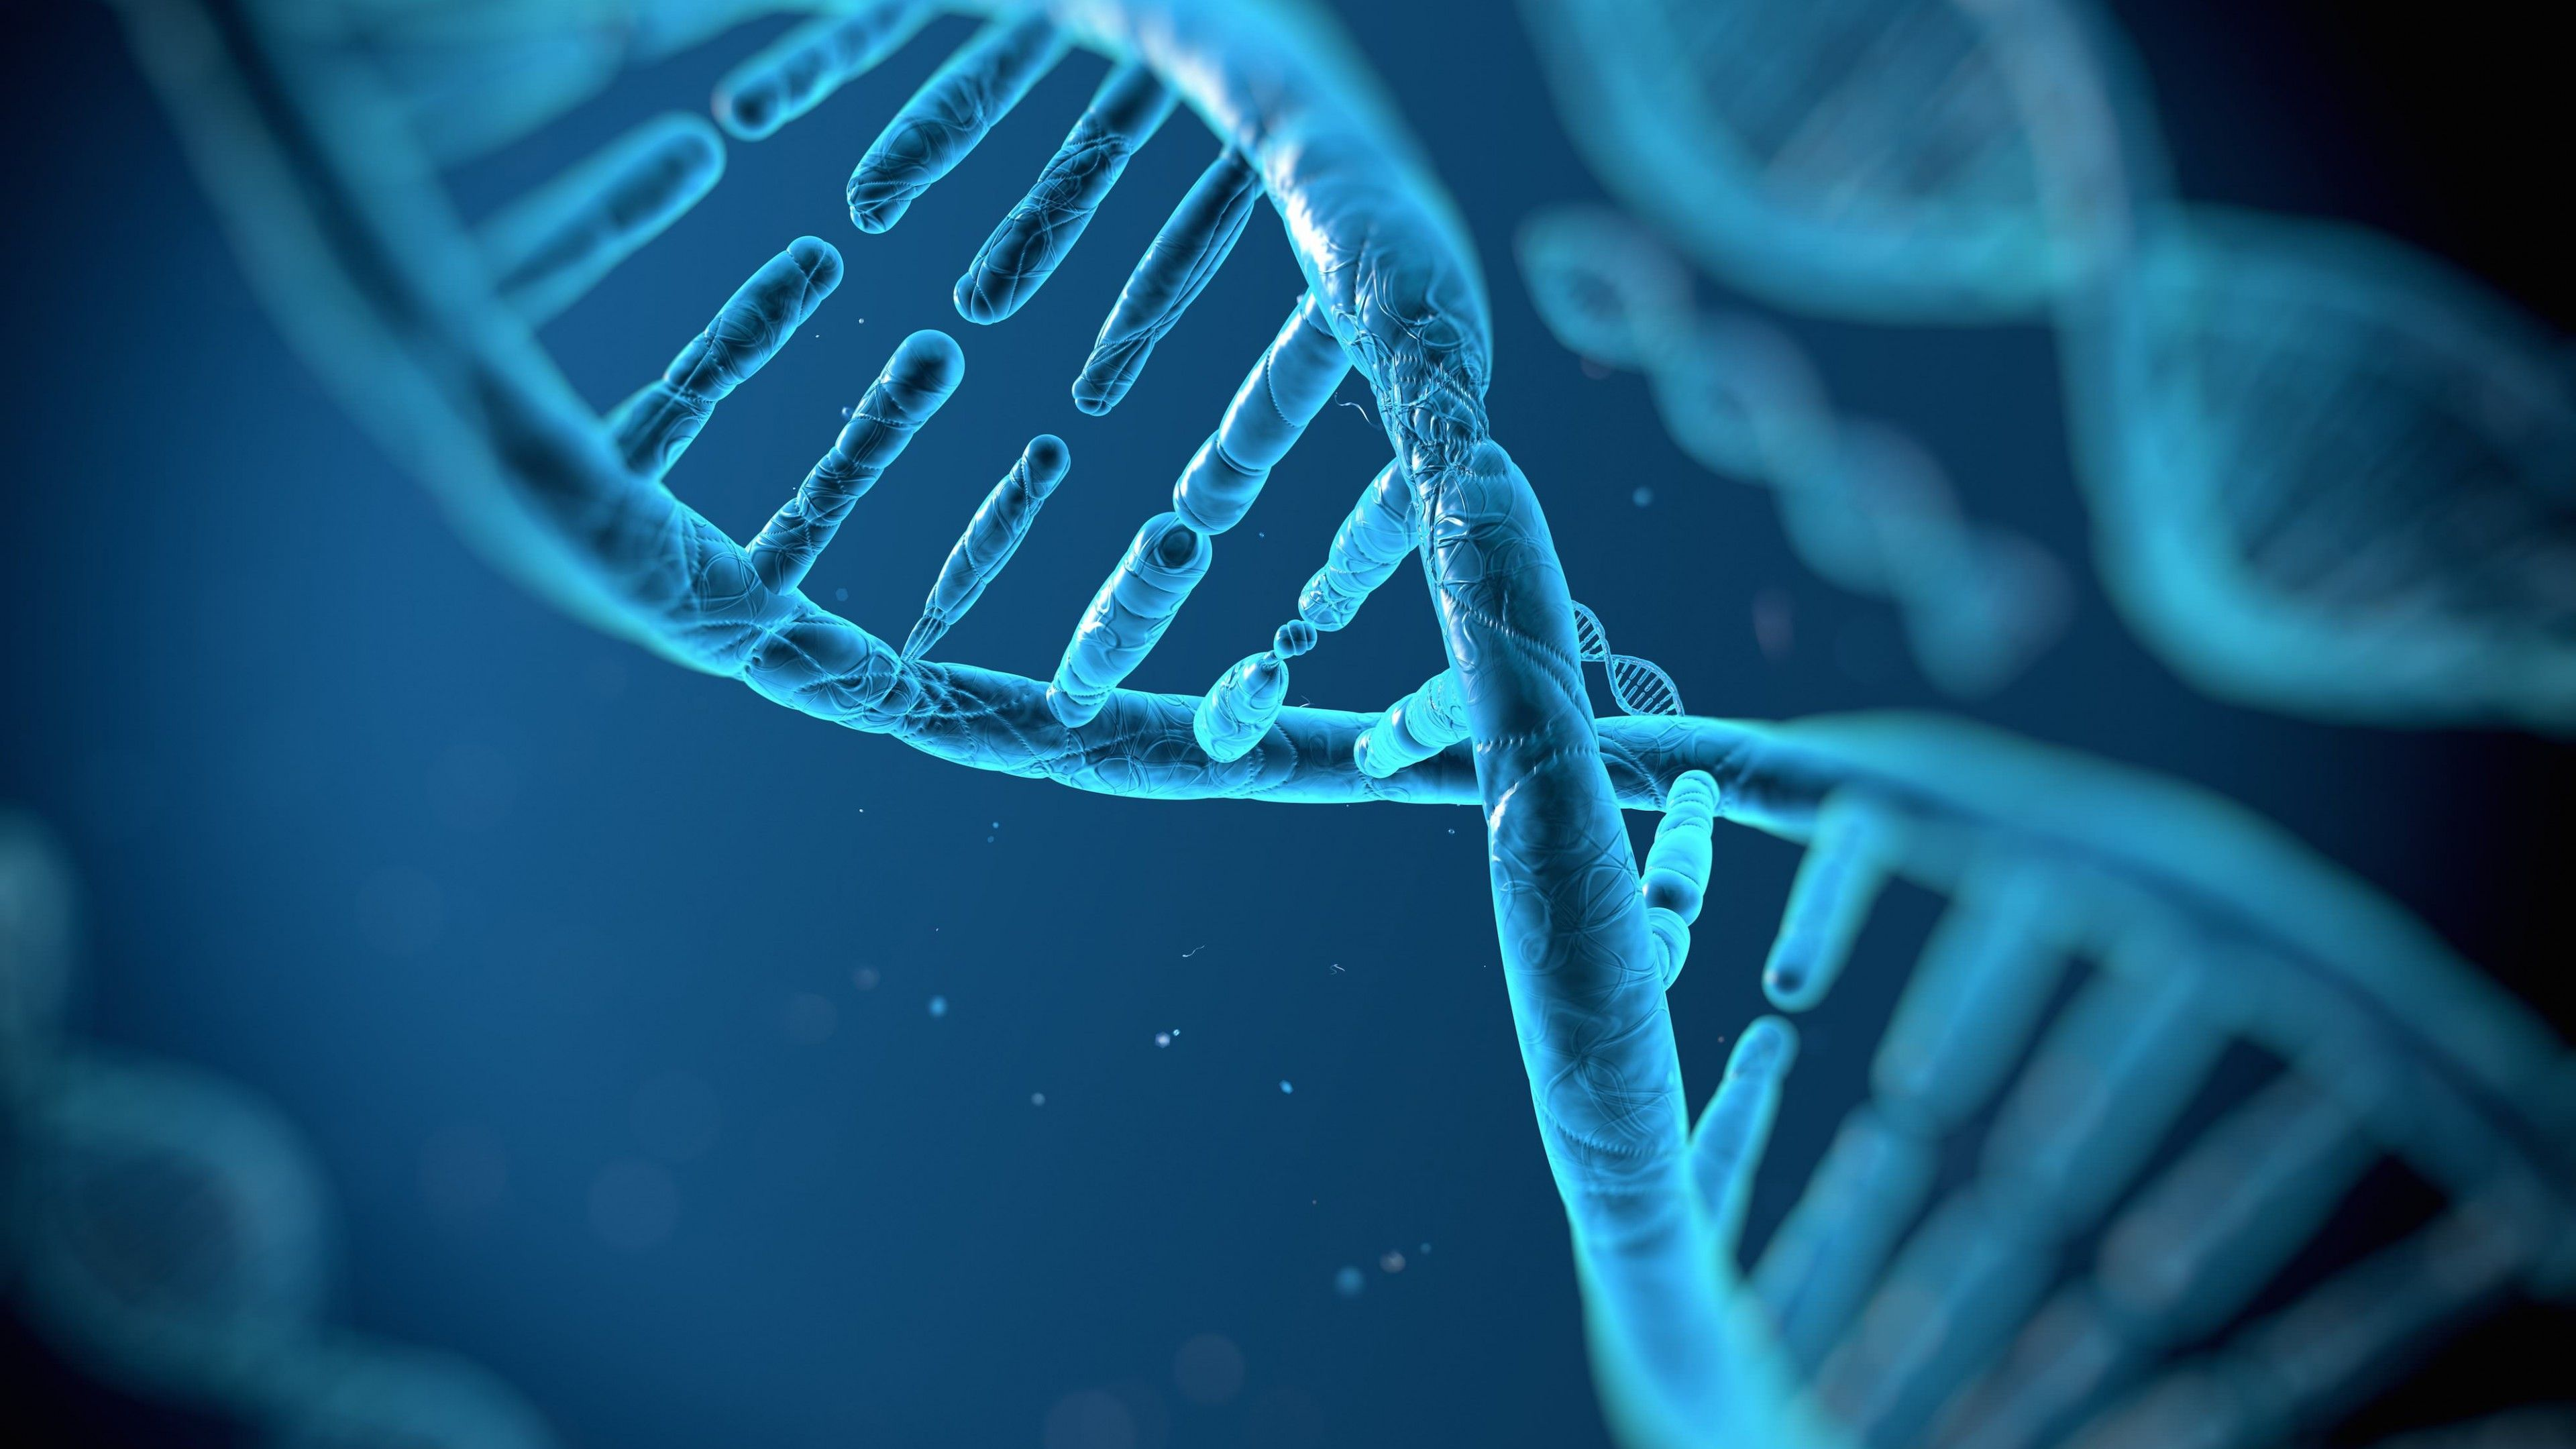 DNA Structure Wallpaper HD